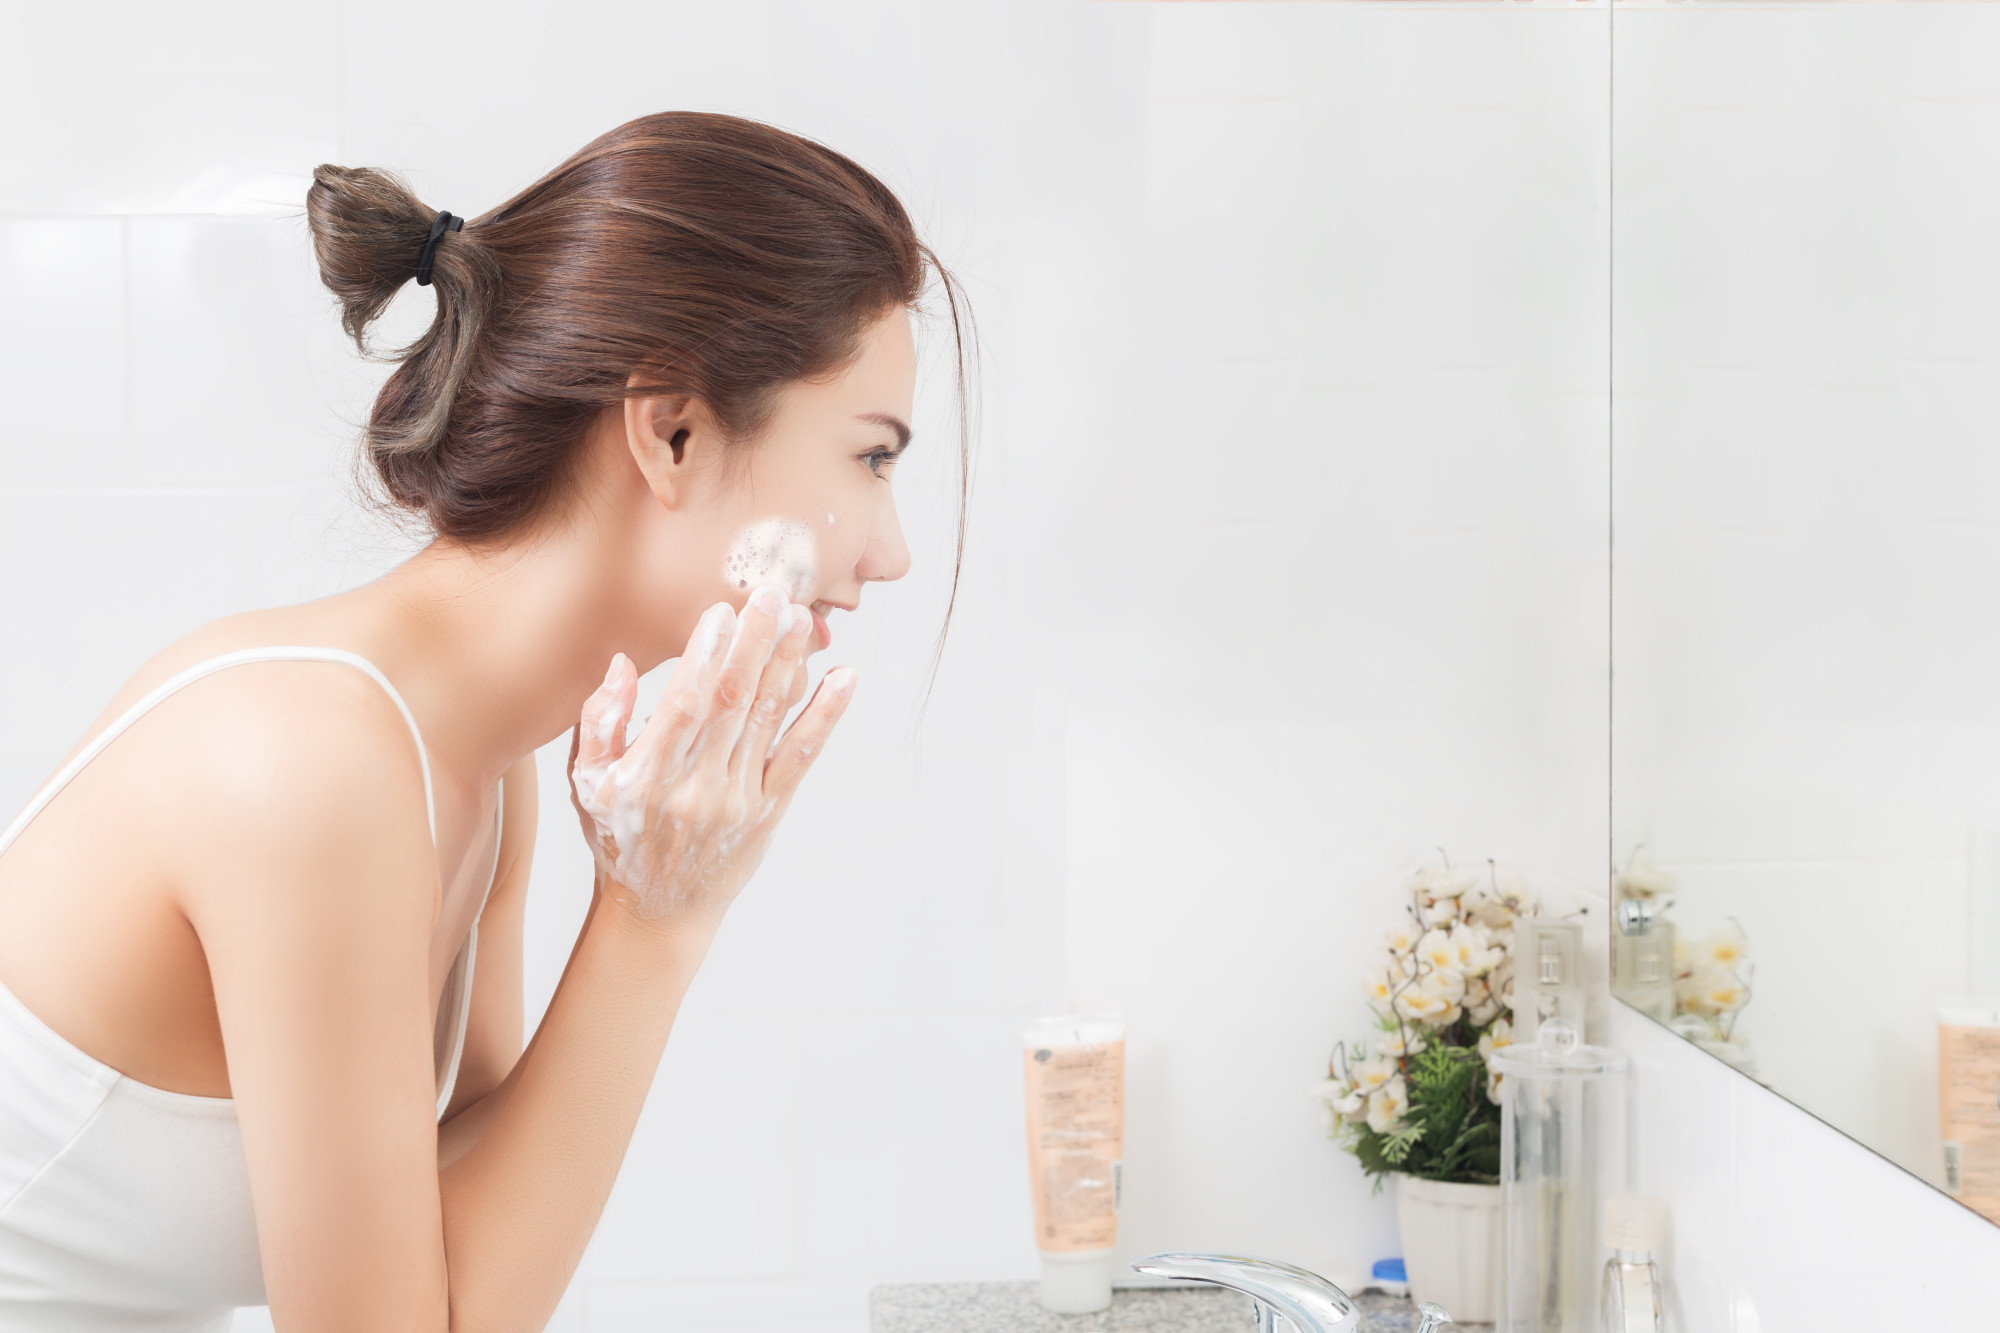 10 Skincare Tips Professionals Want You to Know